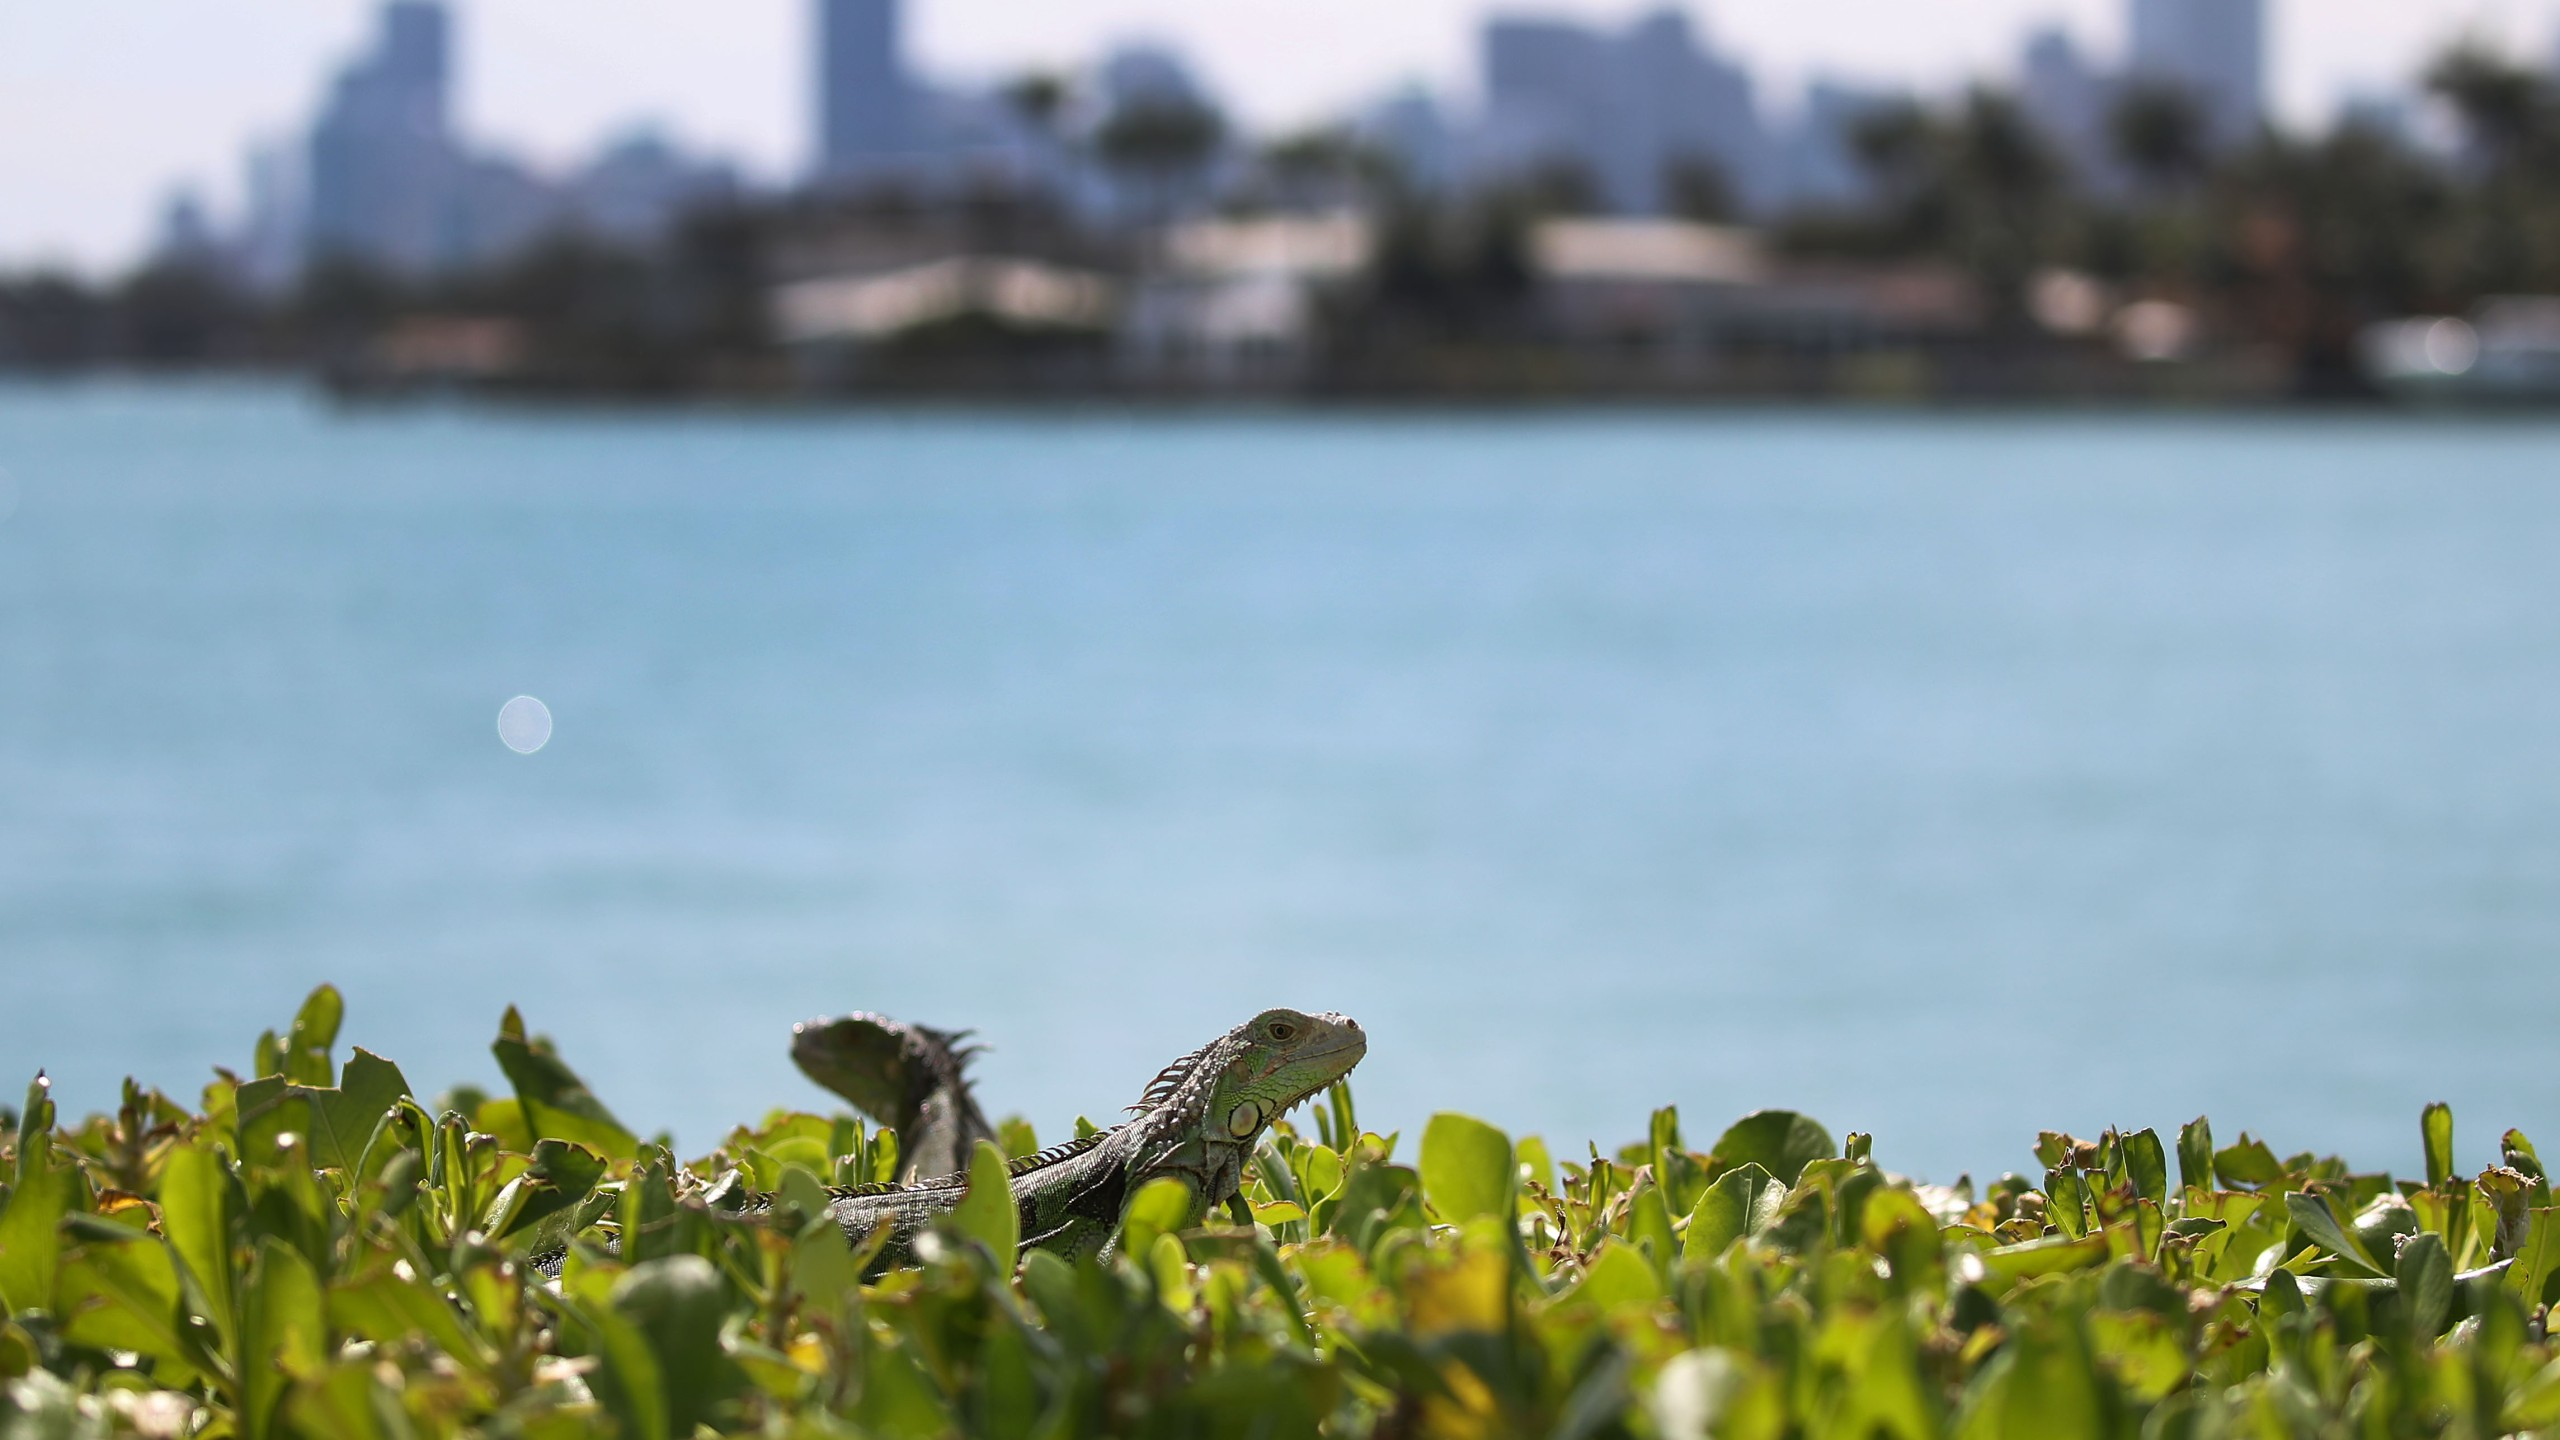 Commission continues its efforts to try and control the invasive species on March 13, 2018. (Credit: Joe Raedle/Getty Images)